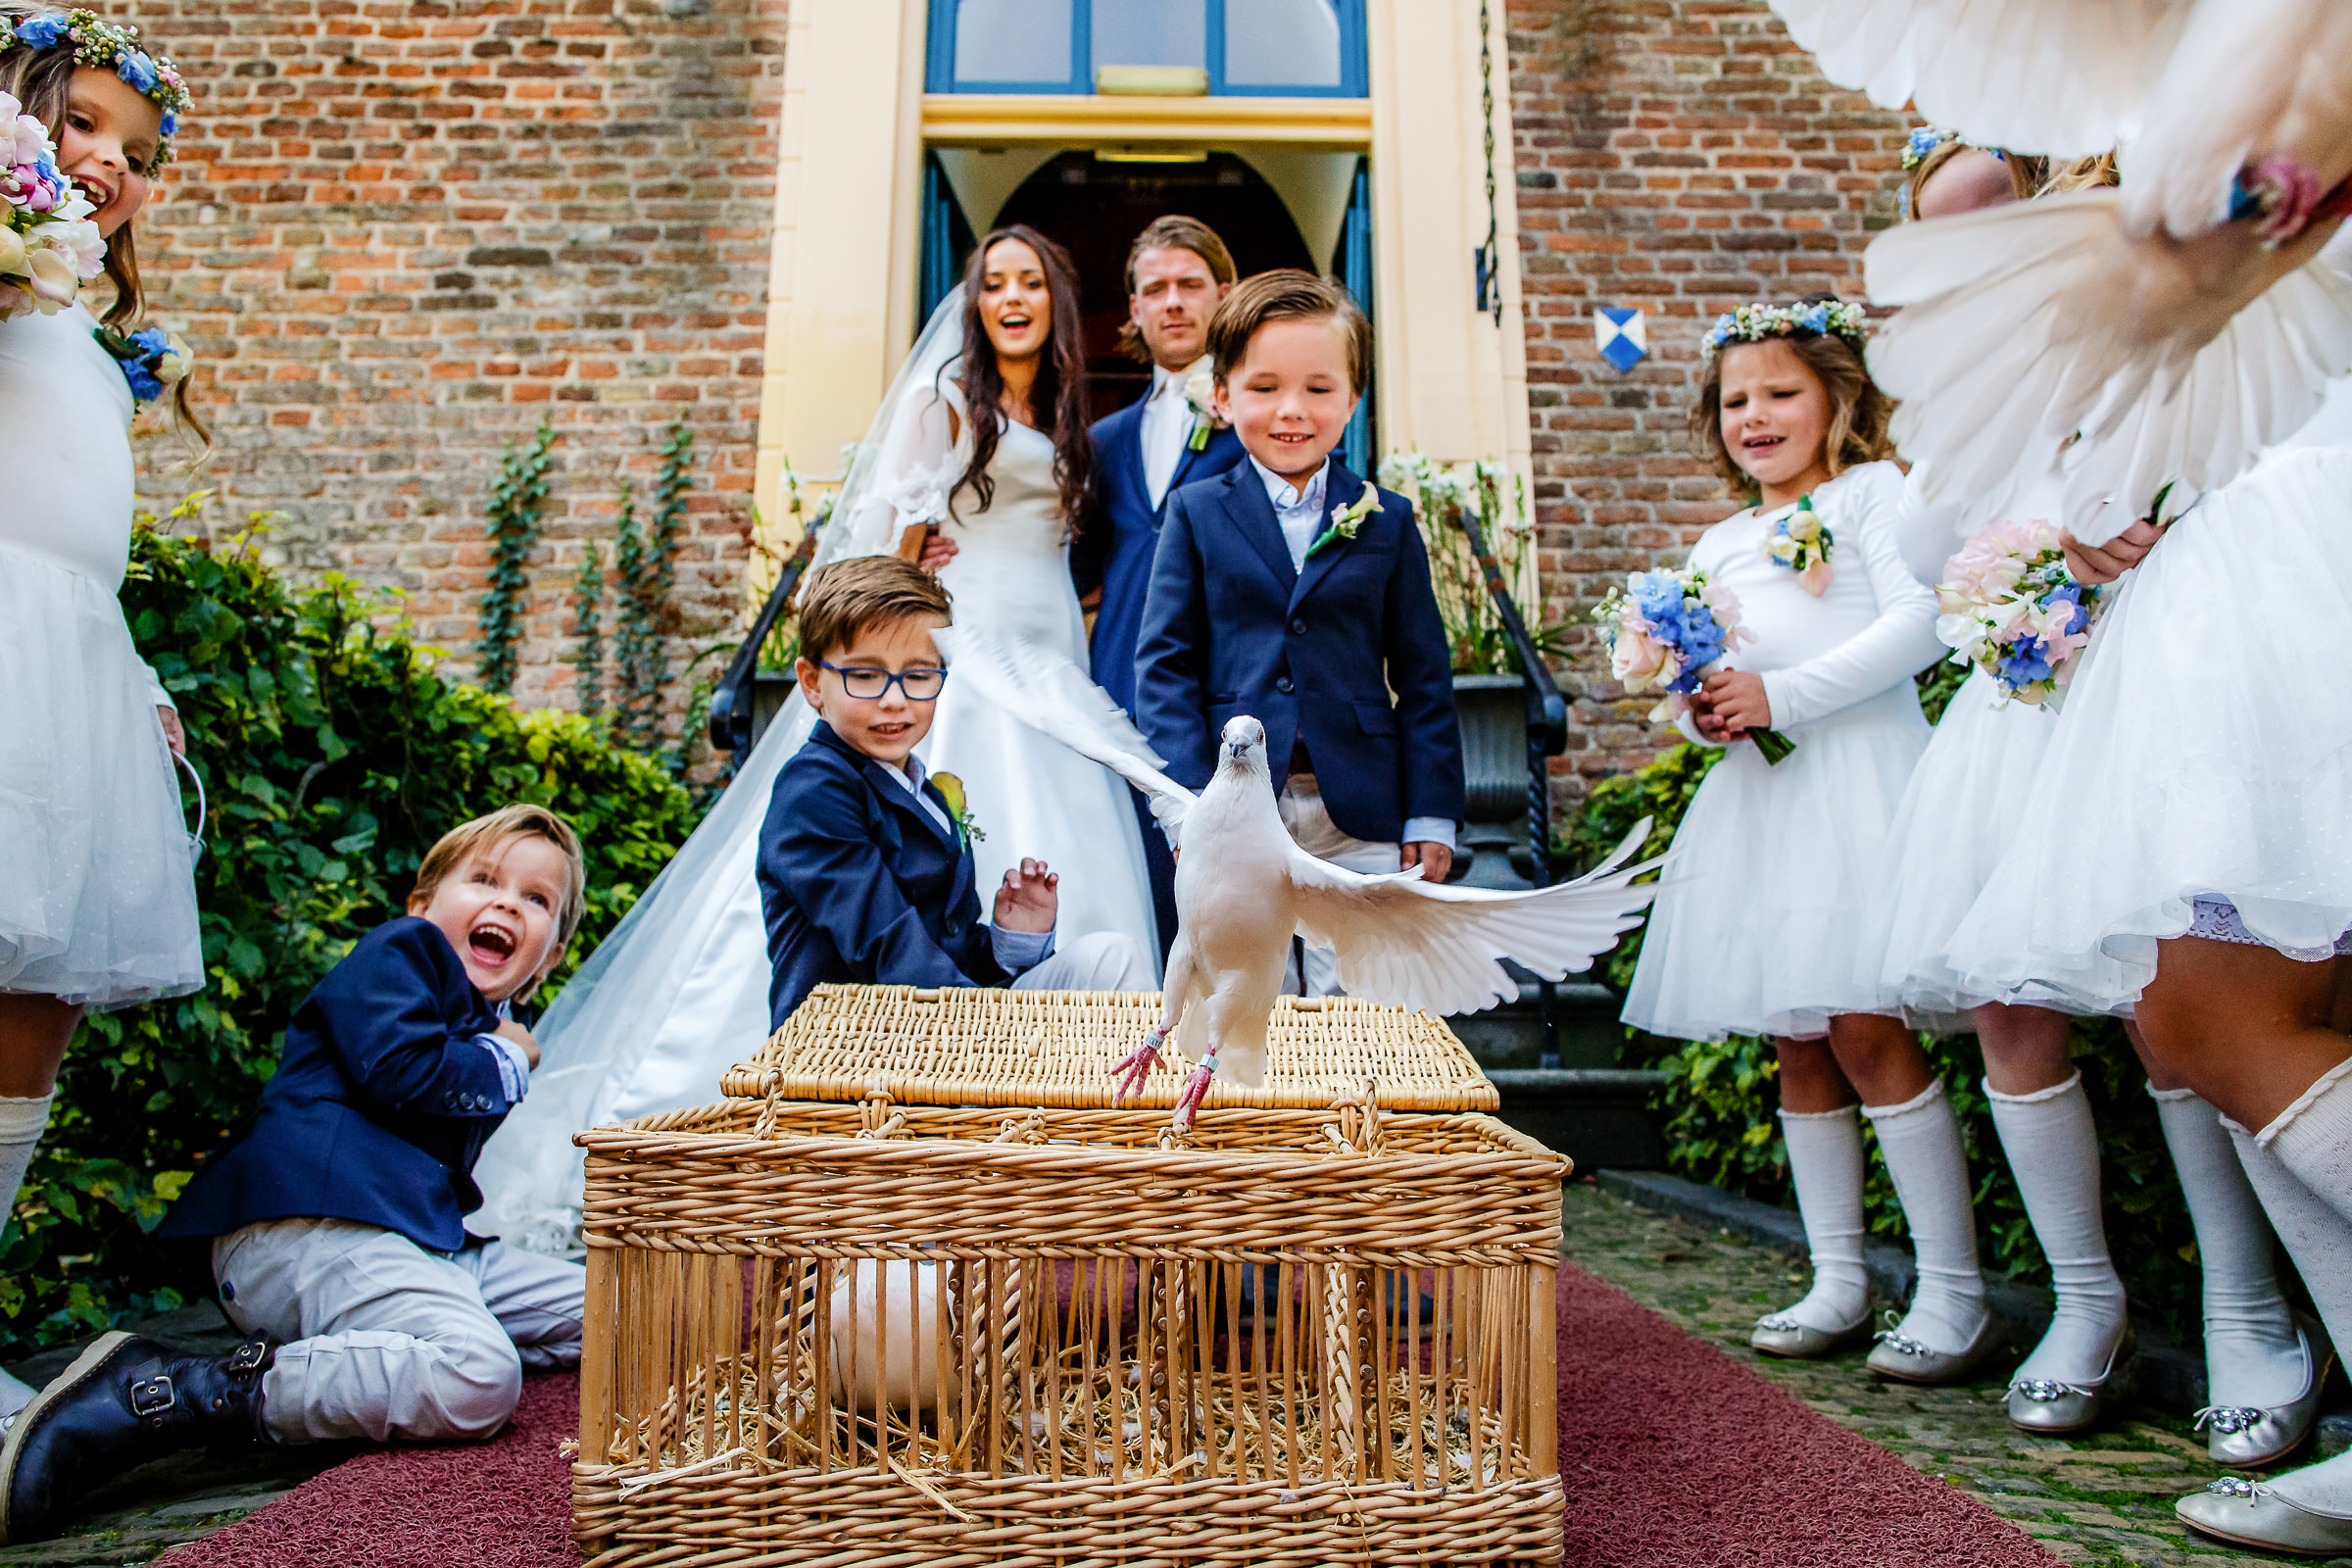 doves-fly-out-of-wicker-basket-amidst-flower-girls-and-couple-peter-van-der-lingen-wedding-photography